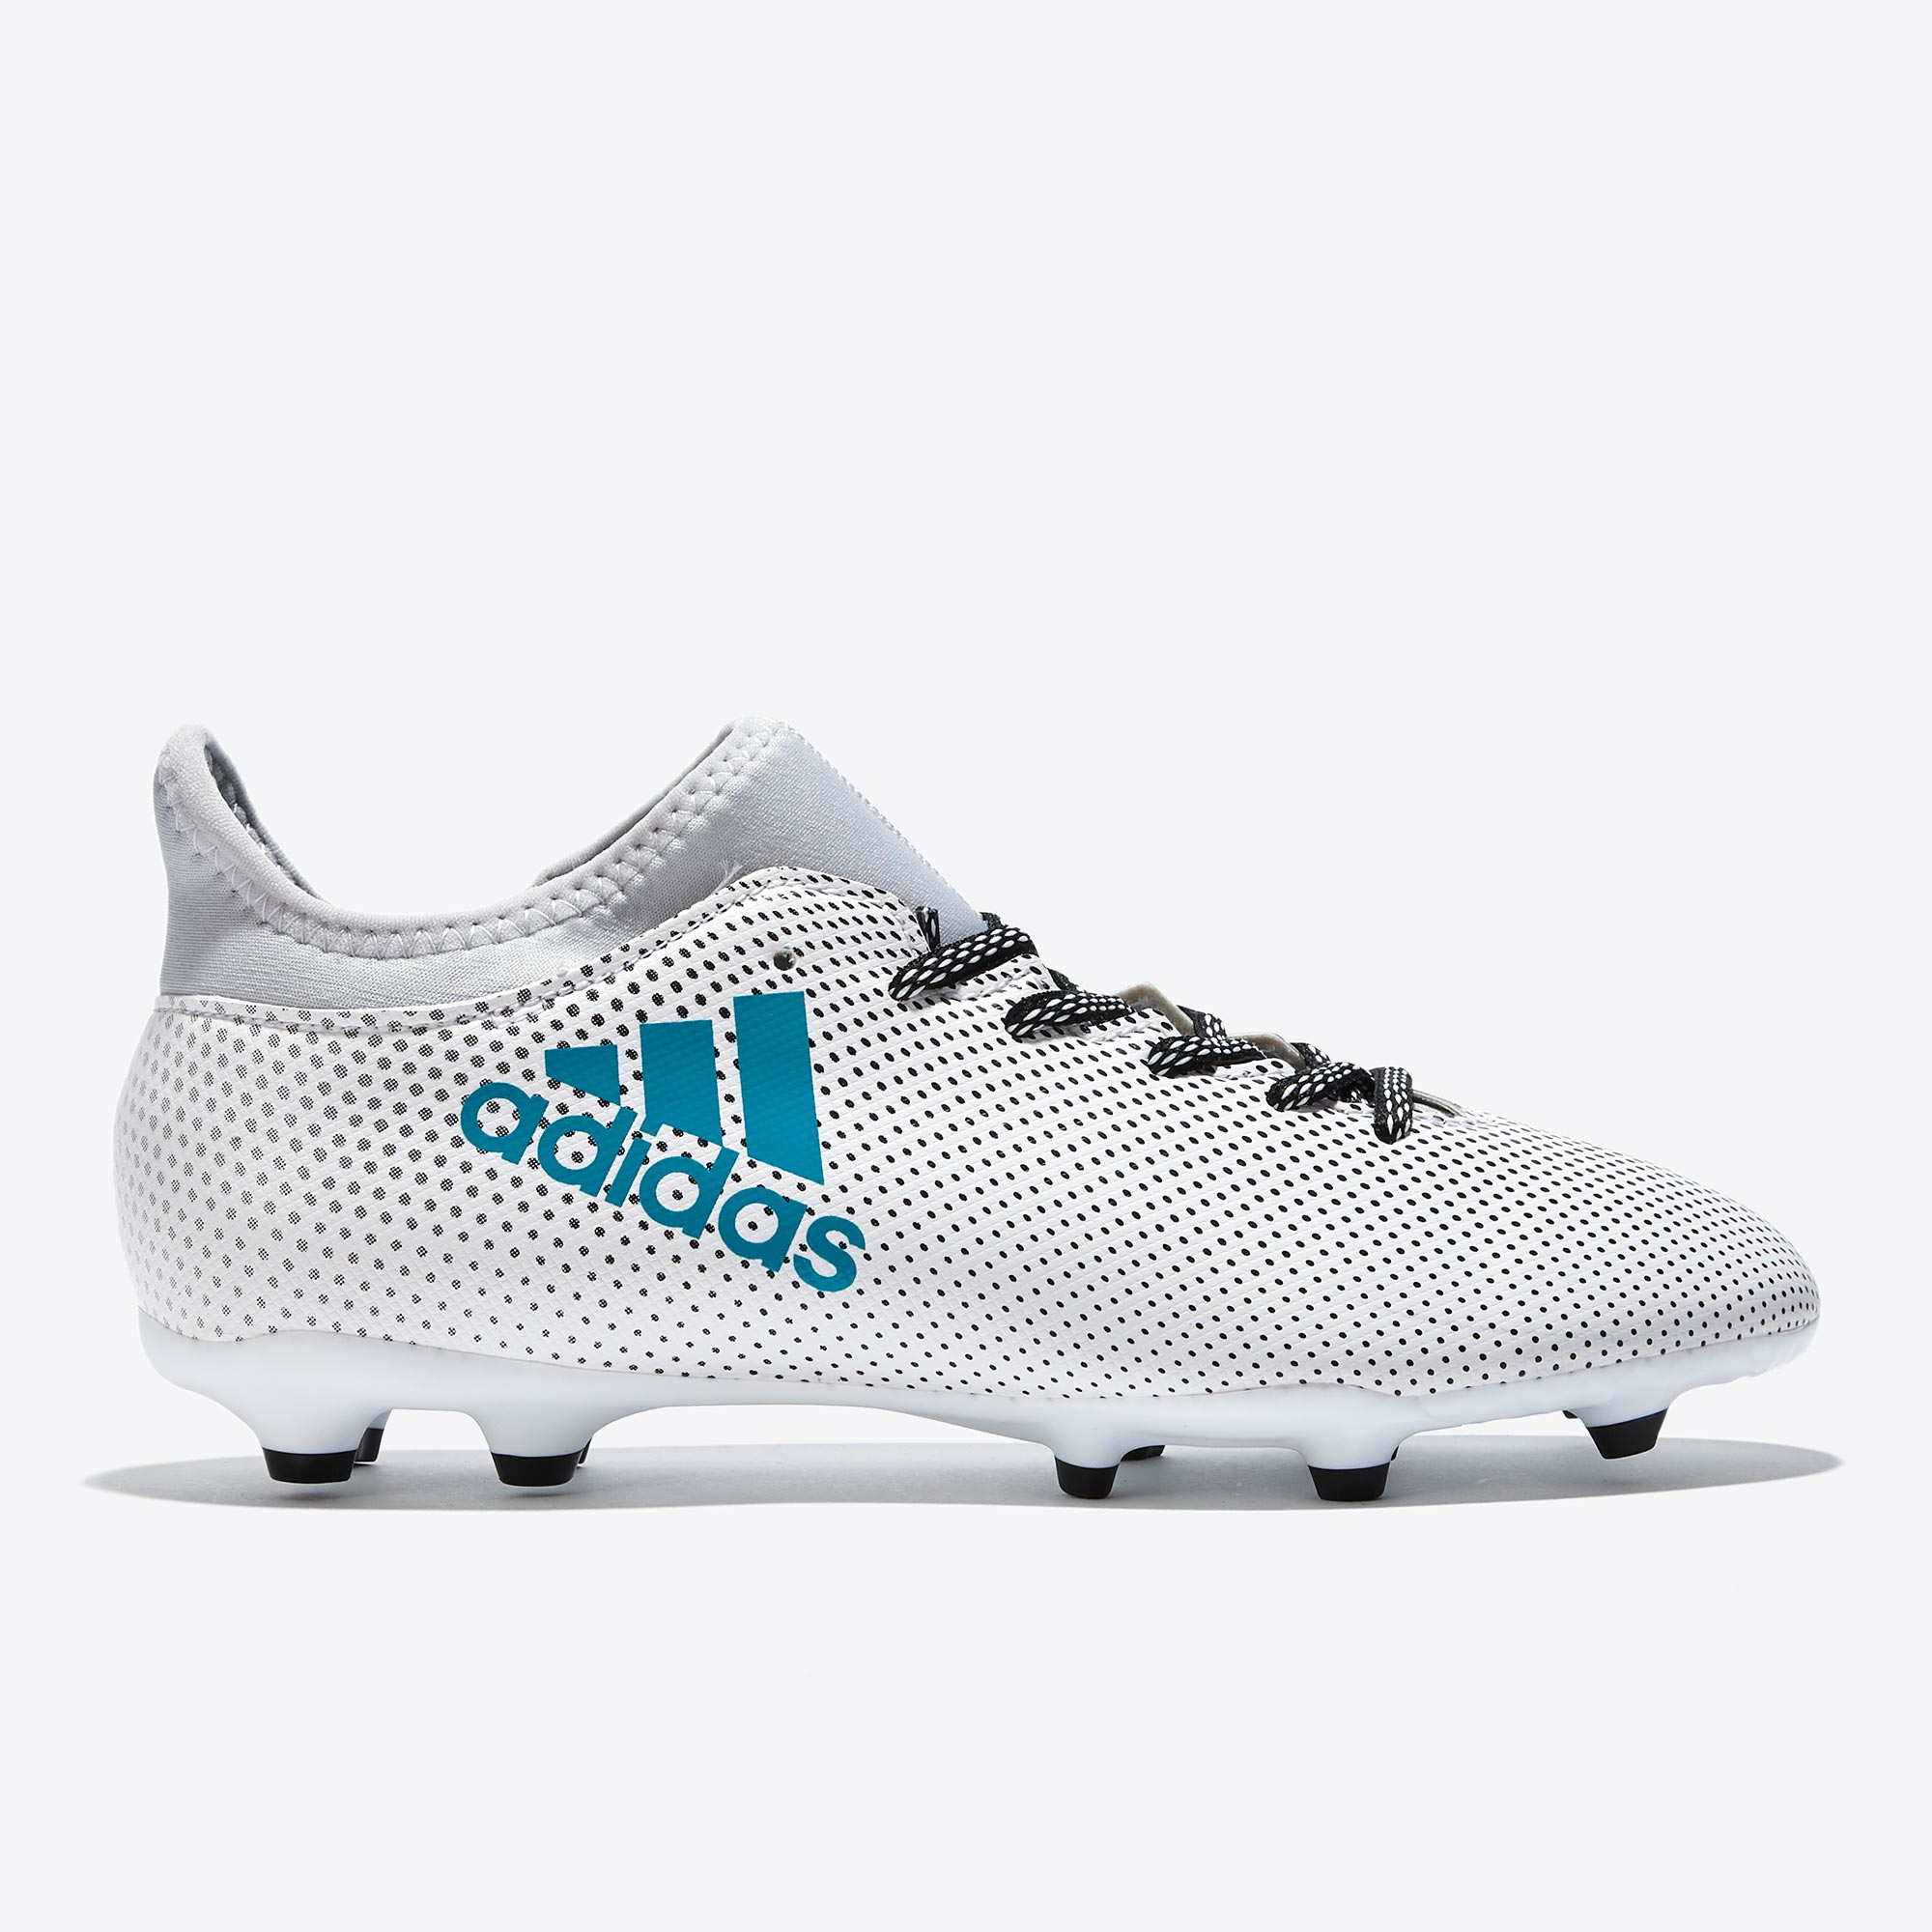 adidas X 17.3 Firm Ground Football Boots - White/Energy Blue/Clear Gre